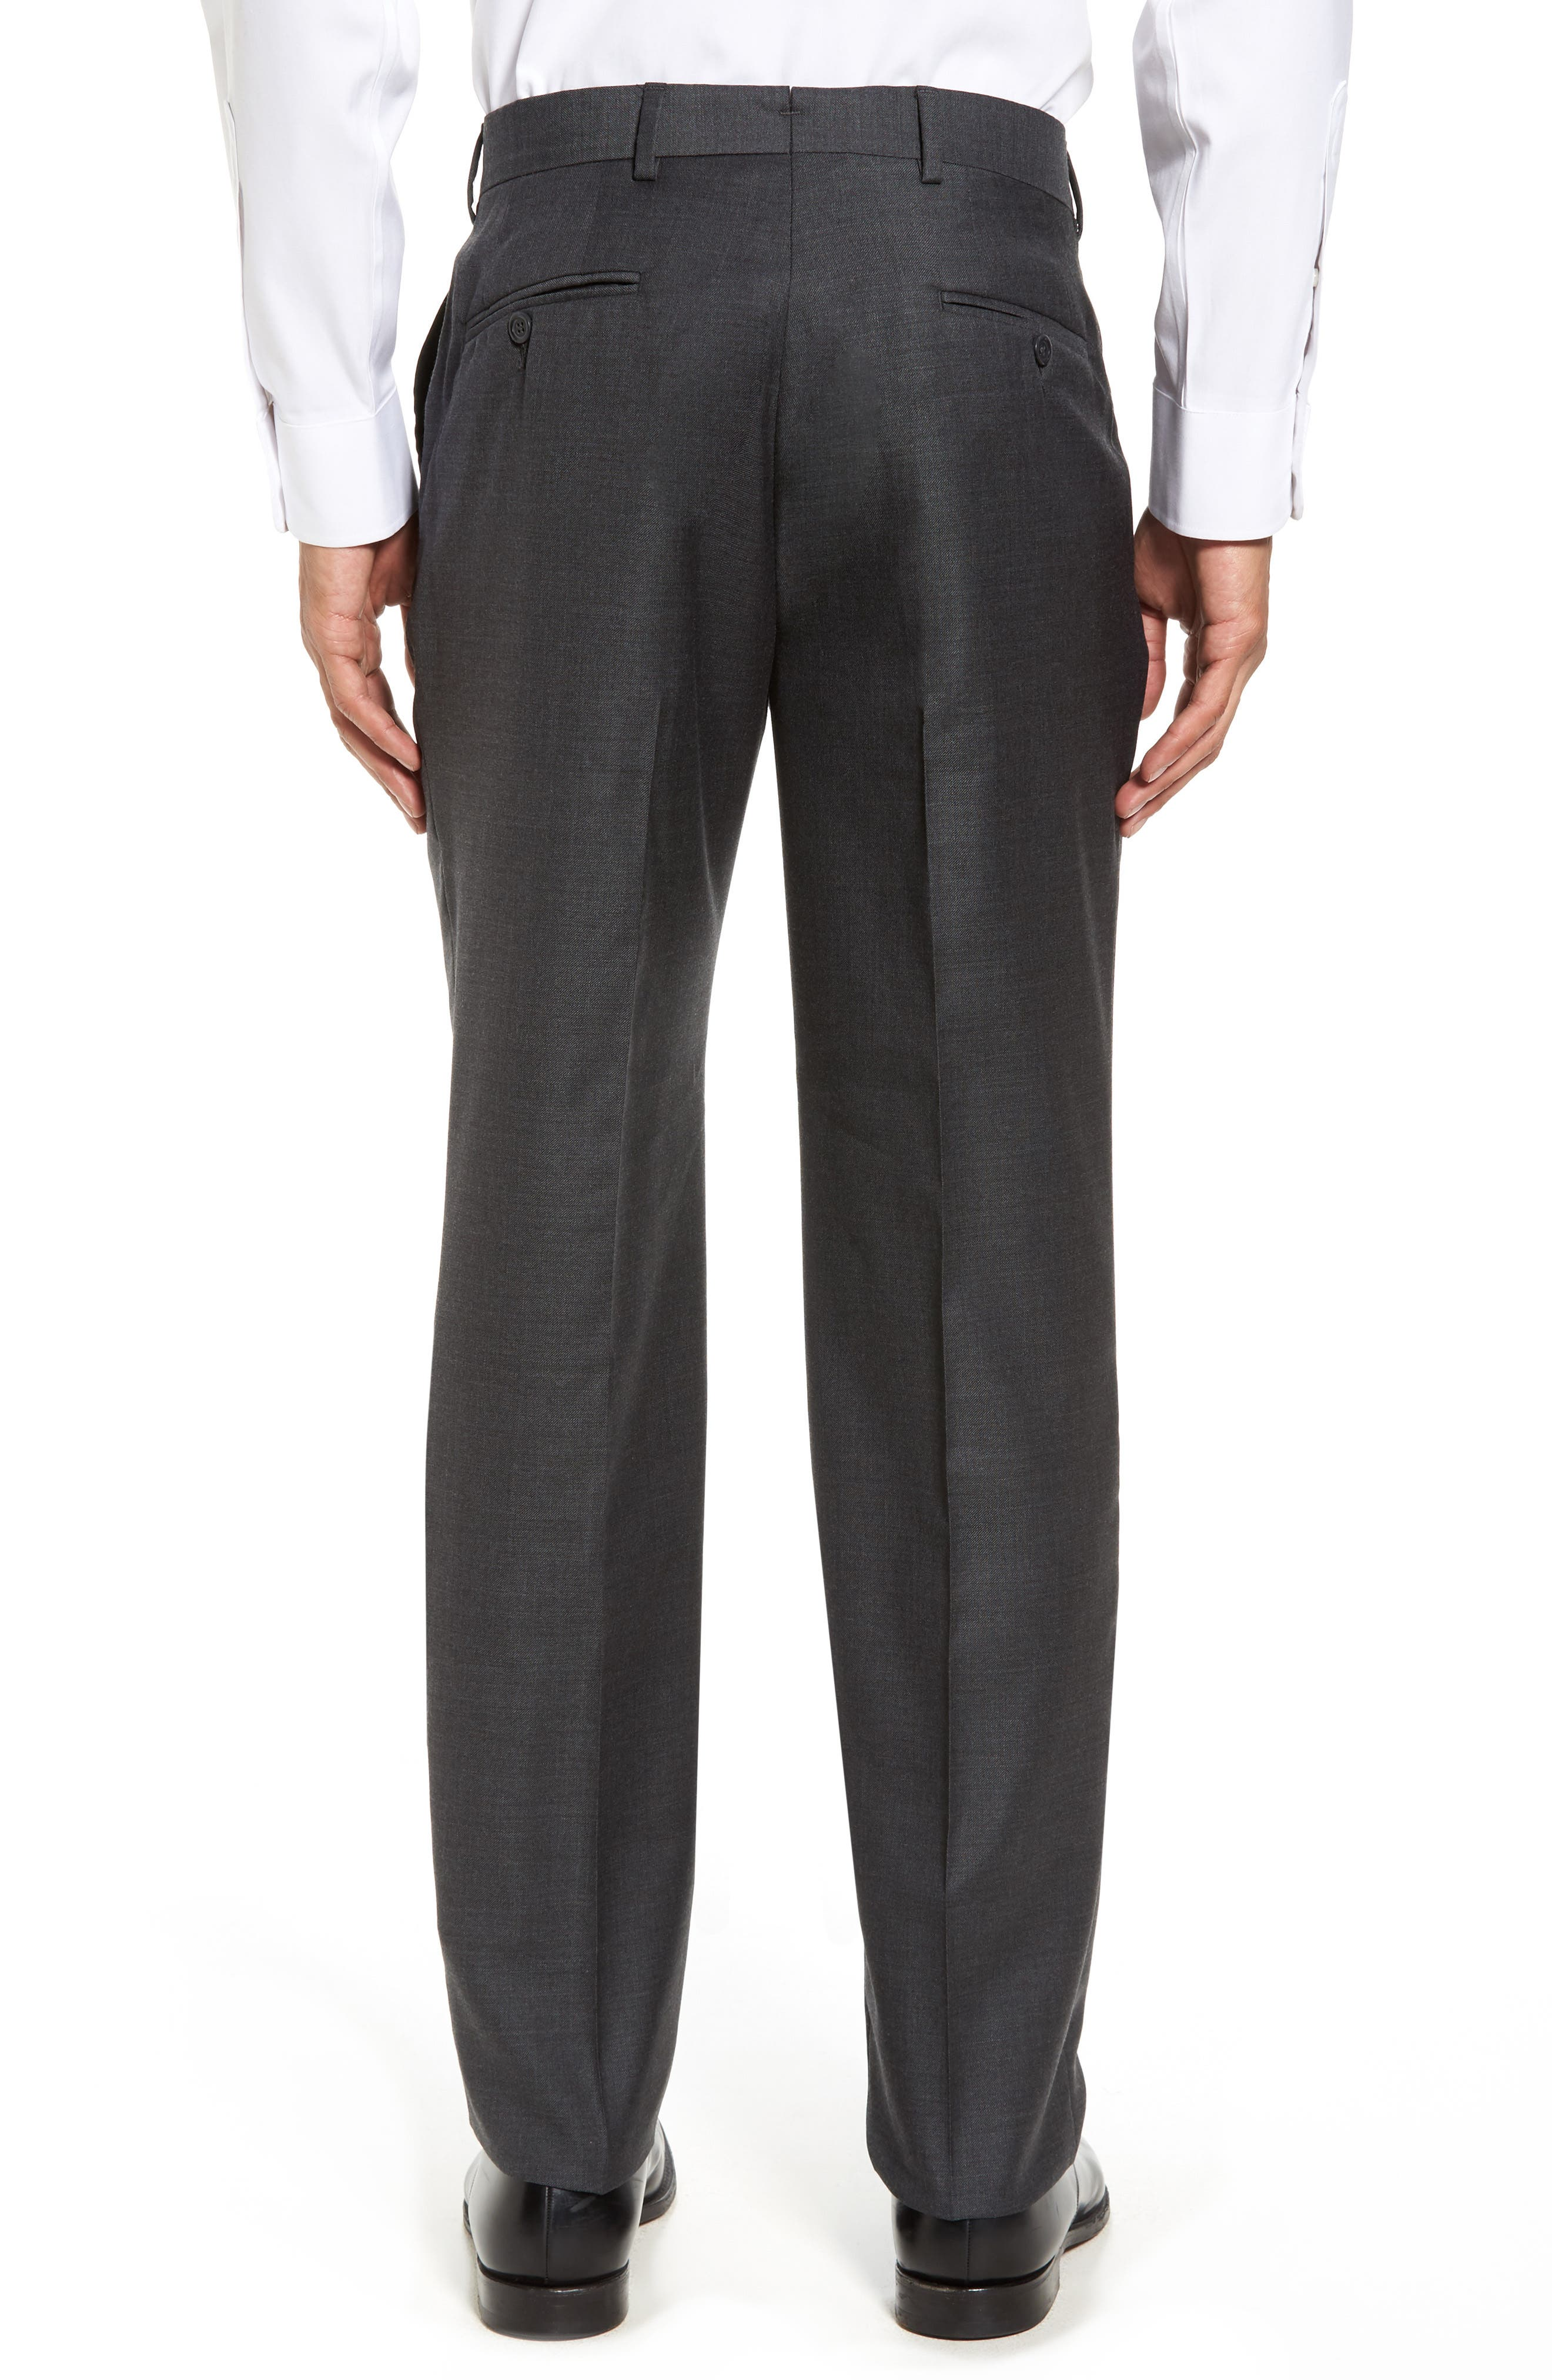 NORDSTROM MEN'S SHOP,                             Flat Front Sharkskin Wool Trousers,                             Alternate thumbnail 3, color,                             025